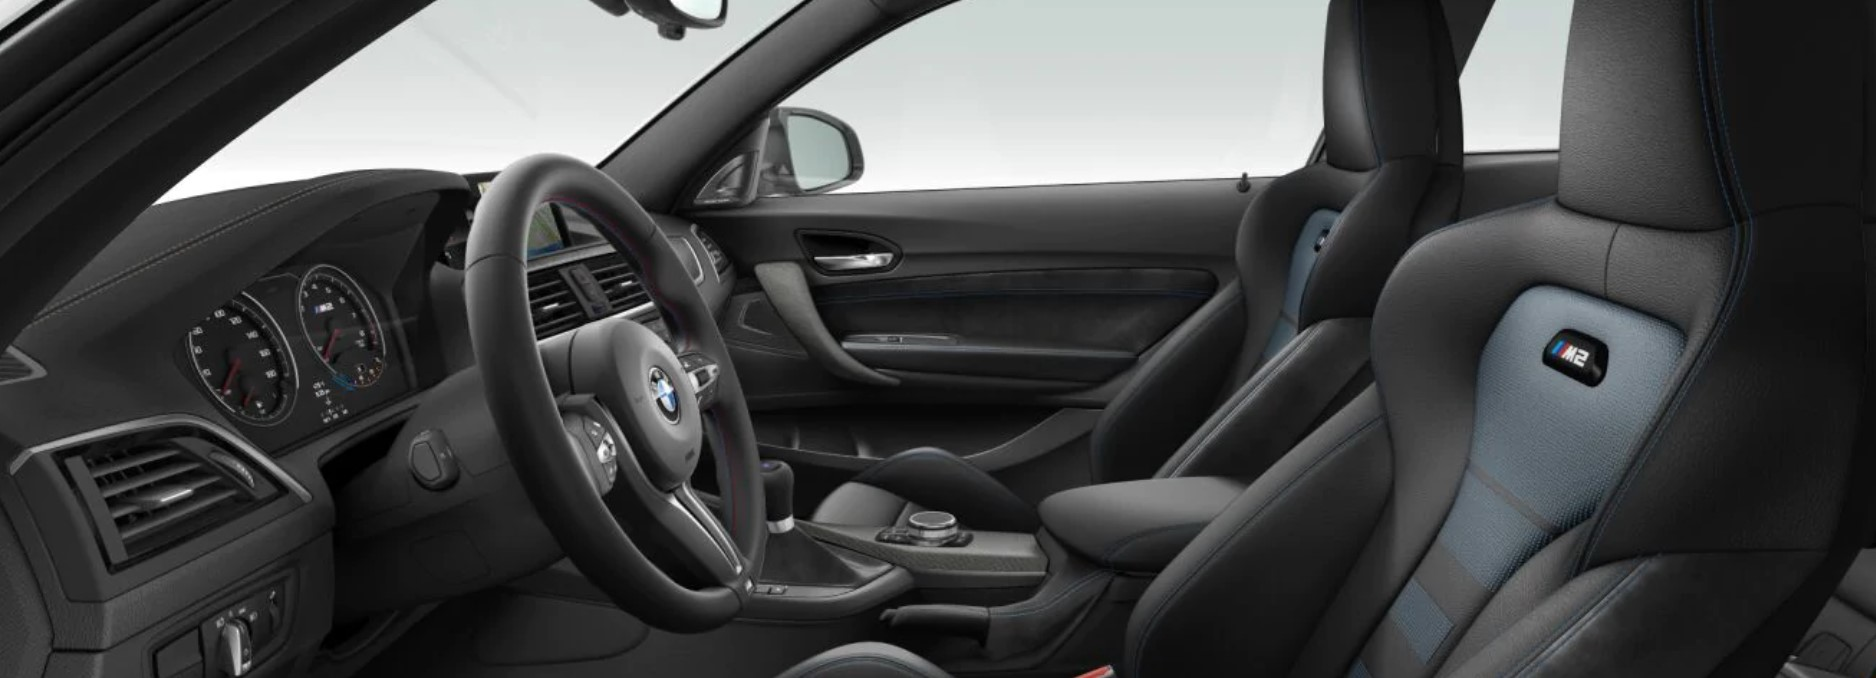 2018 BMW M2 Black Leather Interior